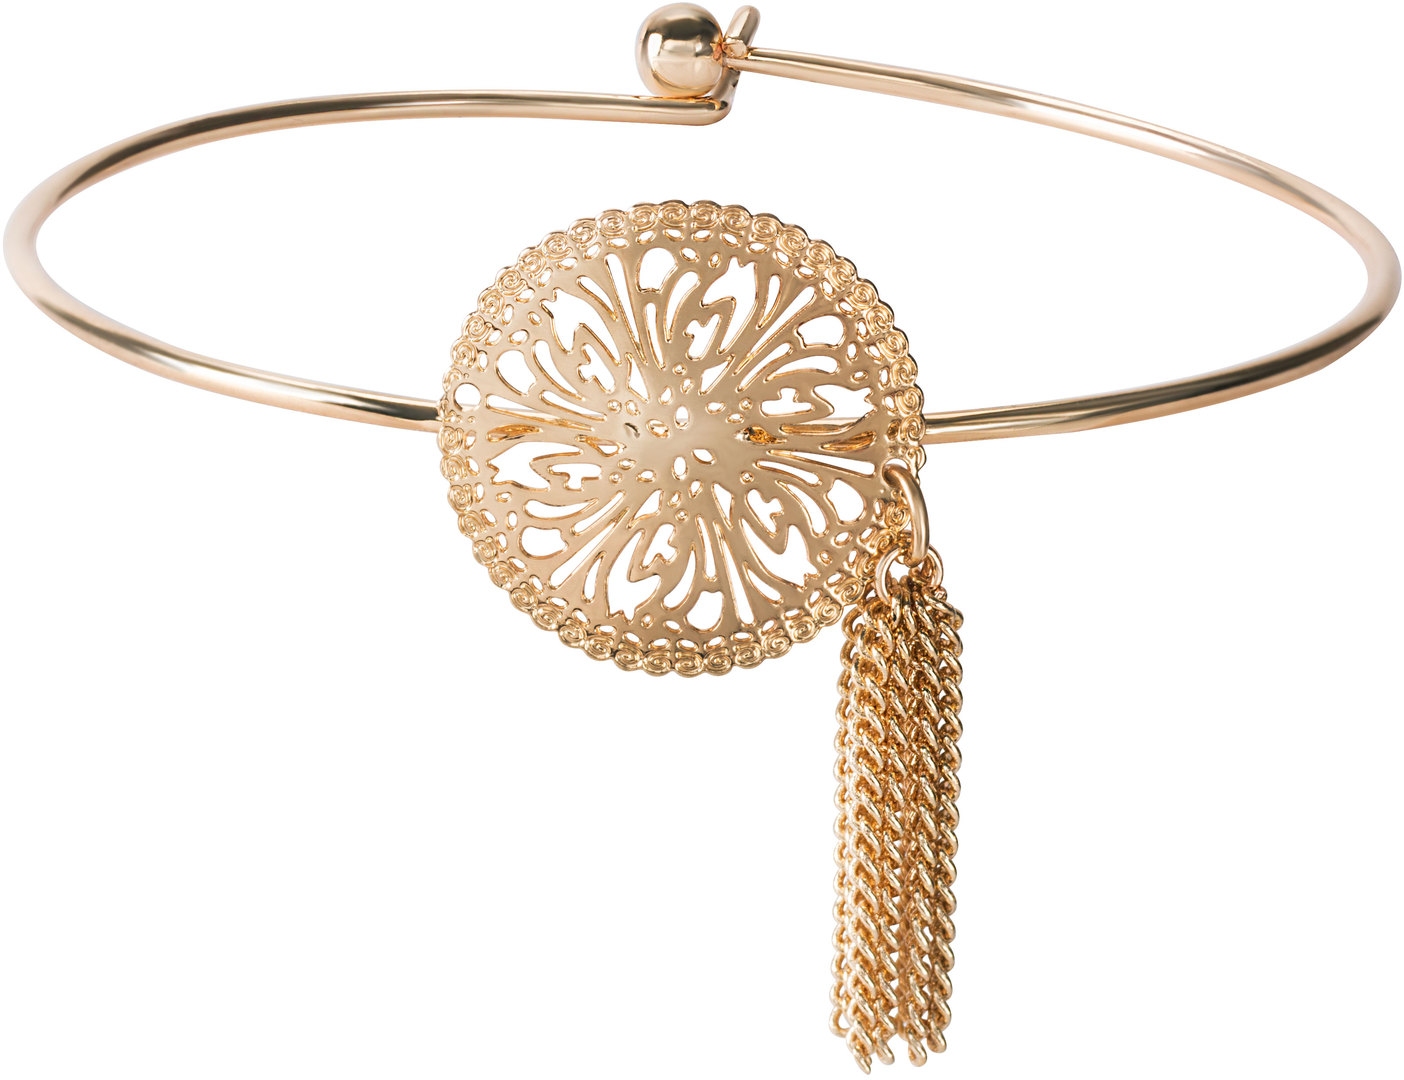 Gold Flourish by H2Z Filigree Jewelry - Gold Flourish - Filigree Bangle Bracelet